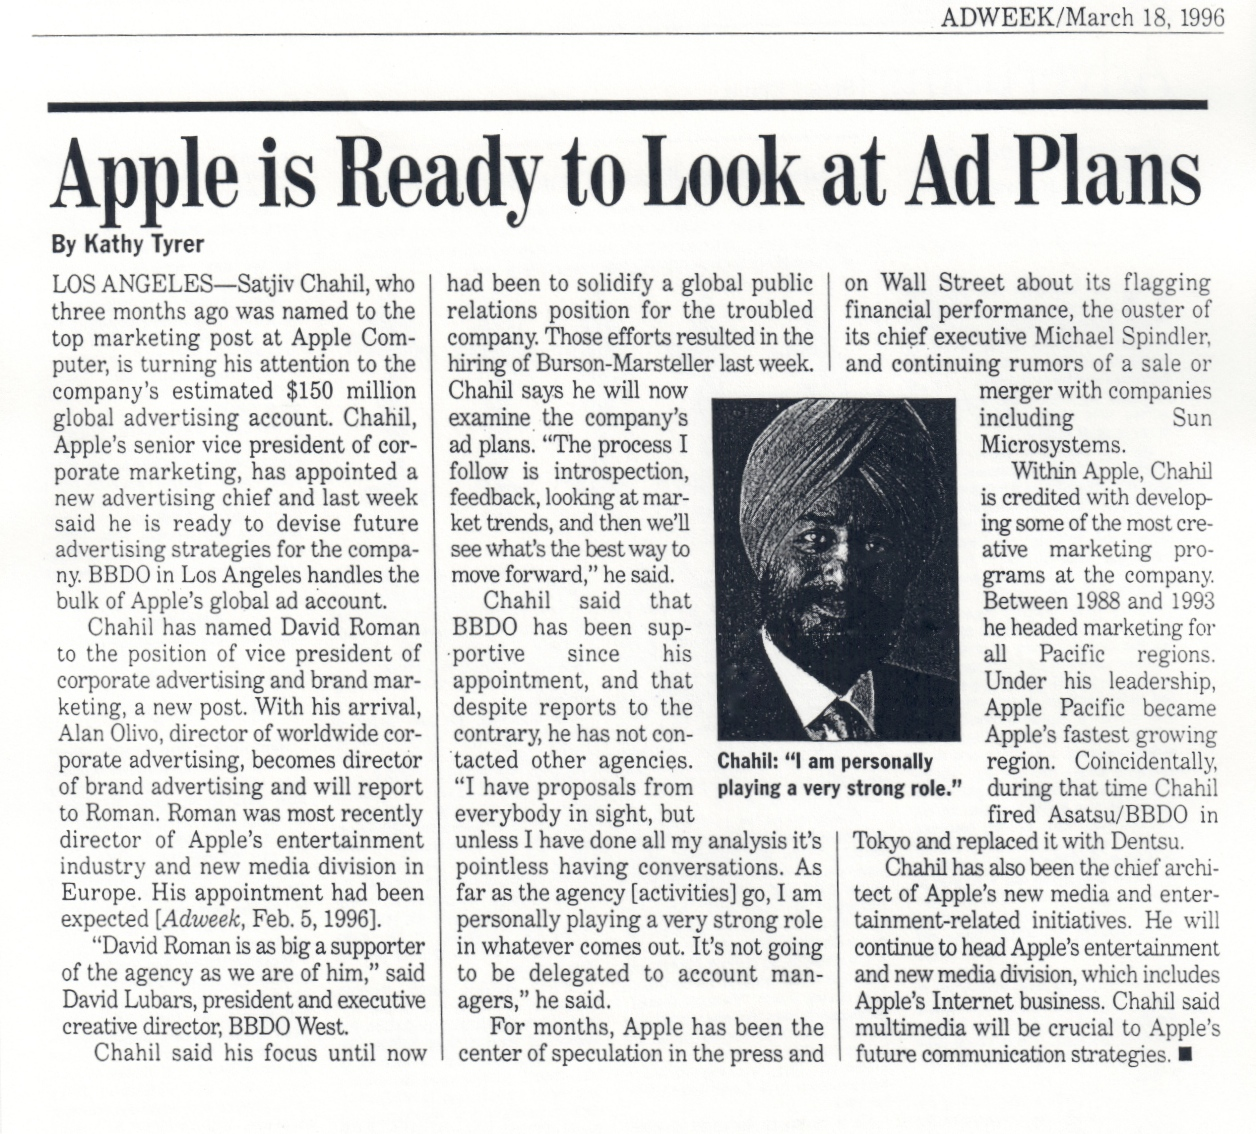 (1996) ADWEEK Apple Ad Plans